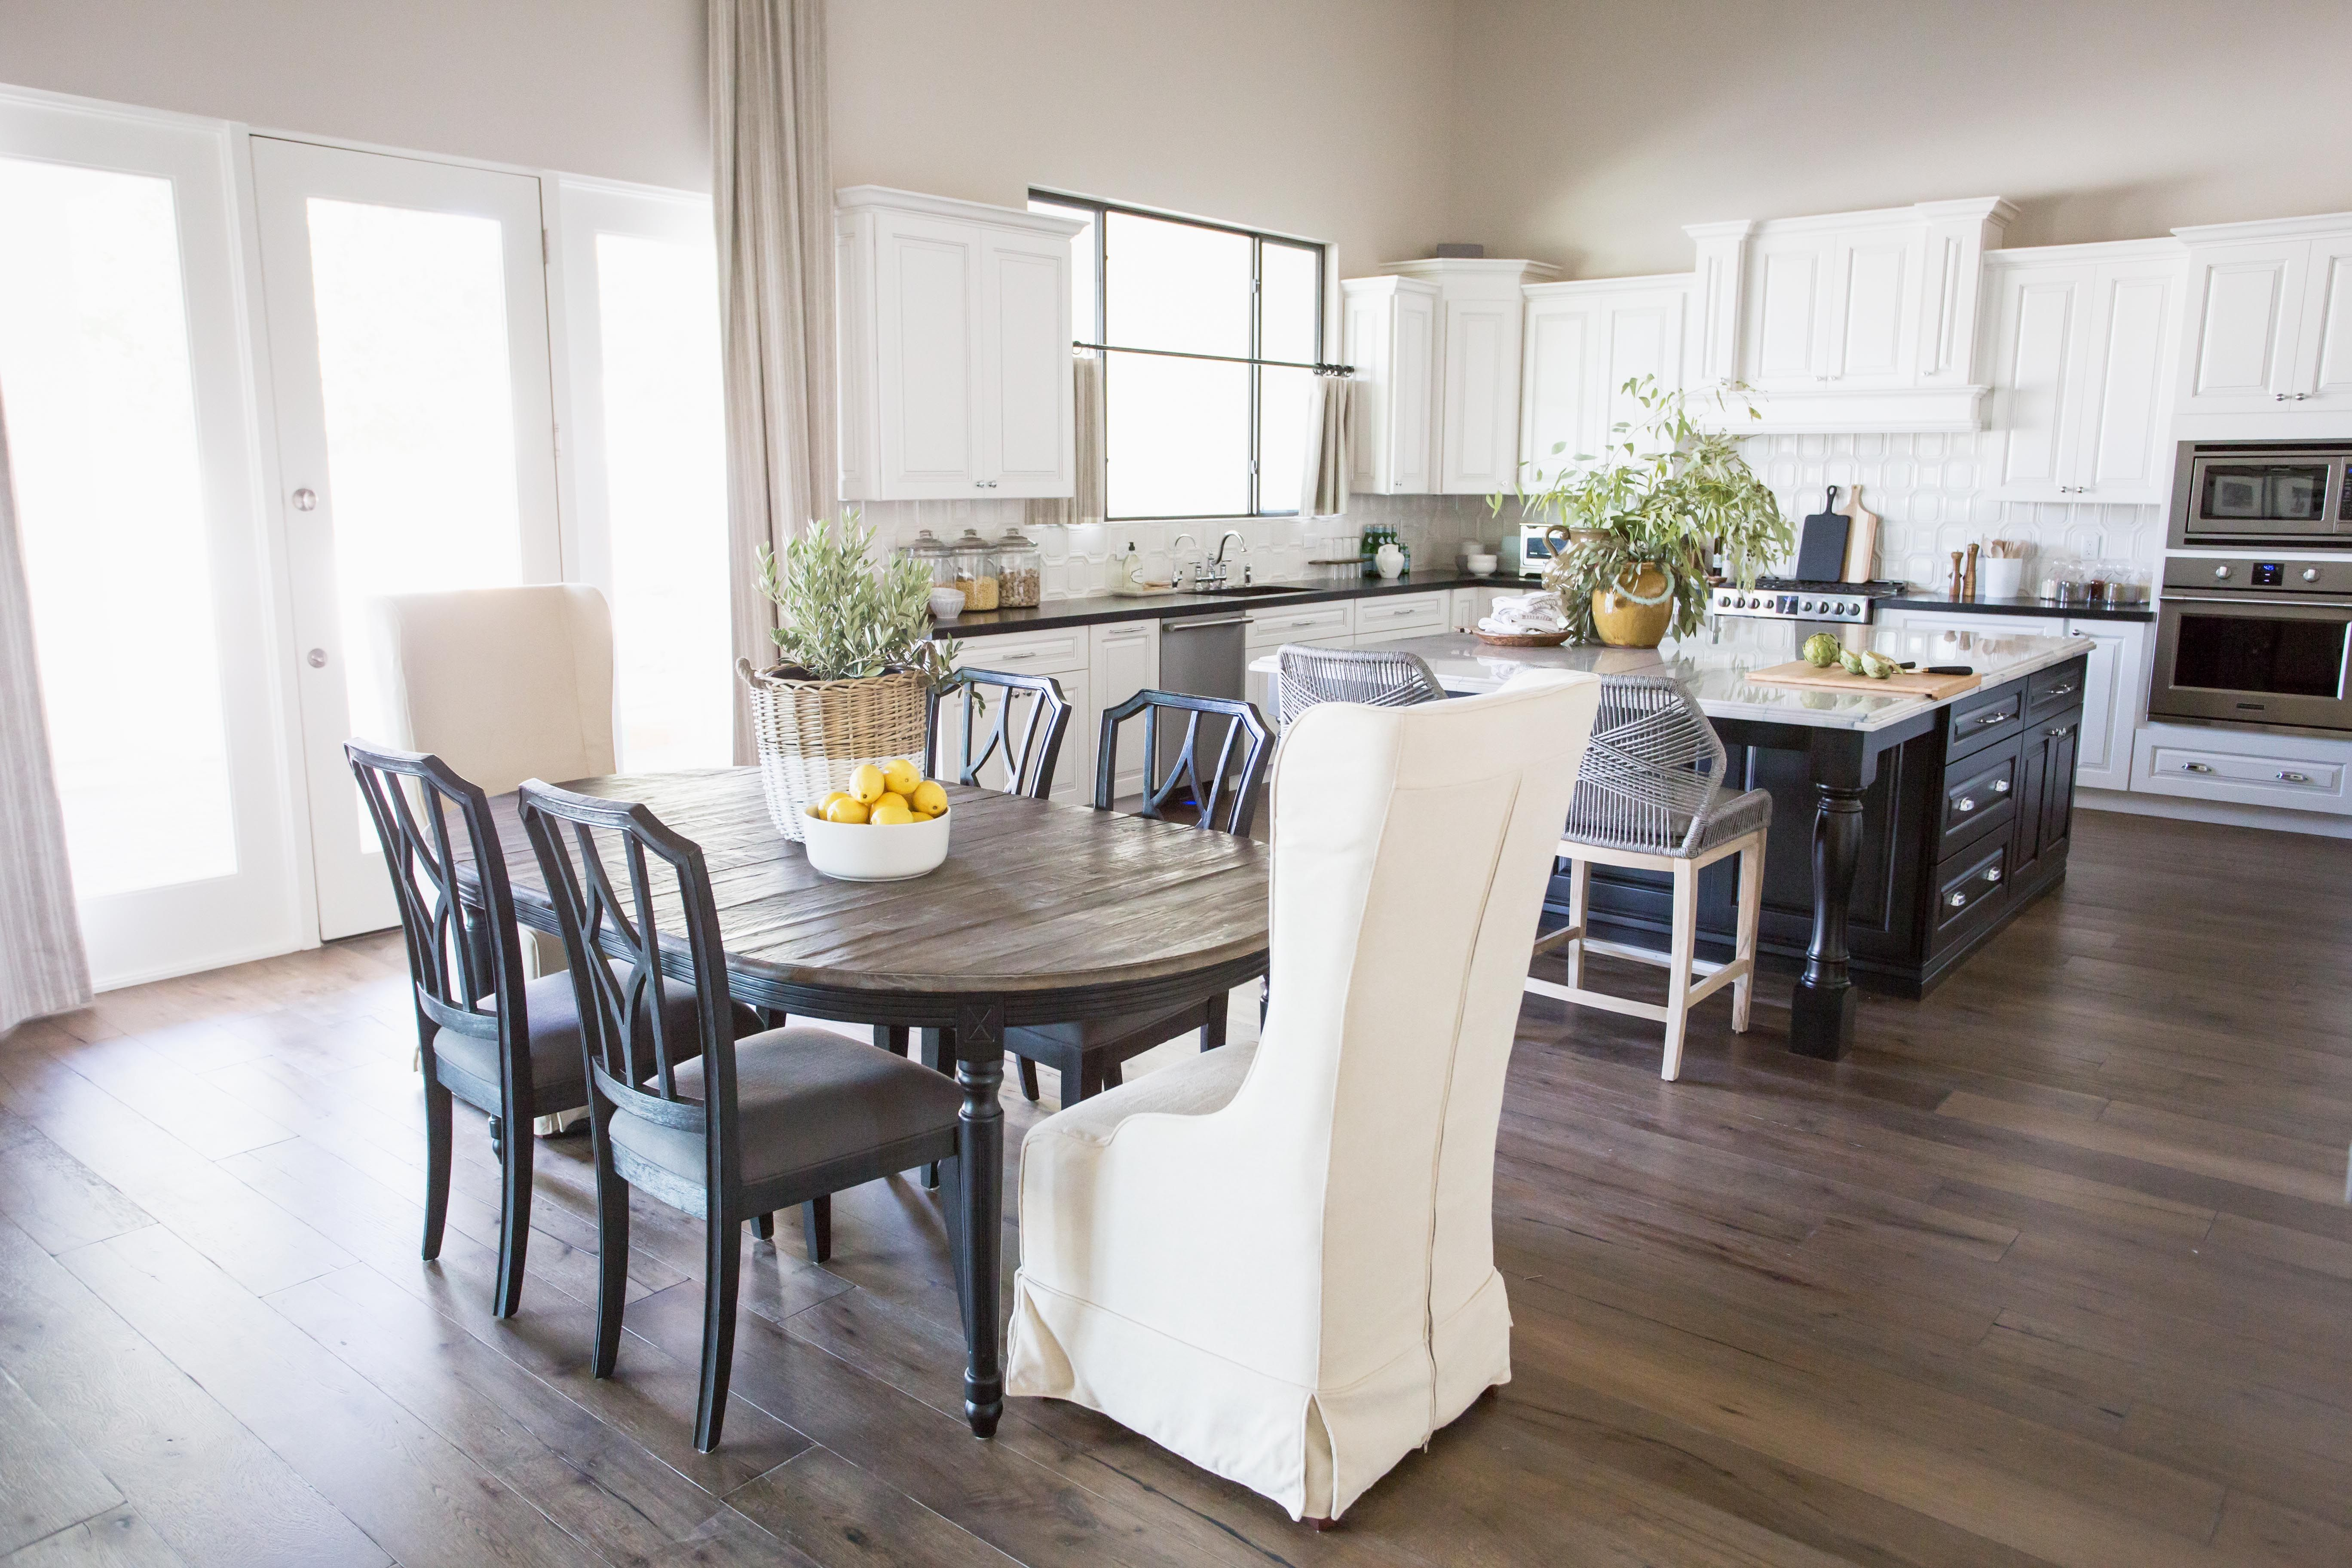 Santa Barbara Style Kitchen The Lifestyled Company Scorpio Place Project Scorpioplaceproject White C Dining Table In Kitchen Mixed Dining Chairs Dining Chairs